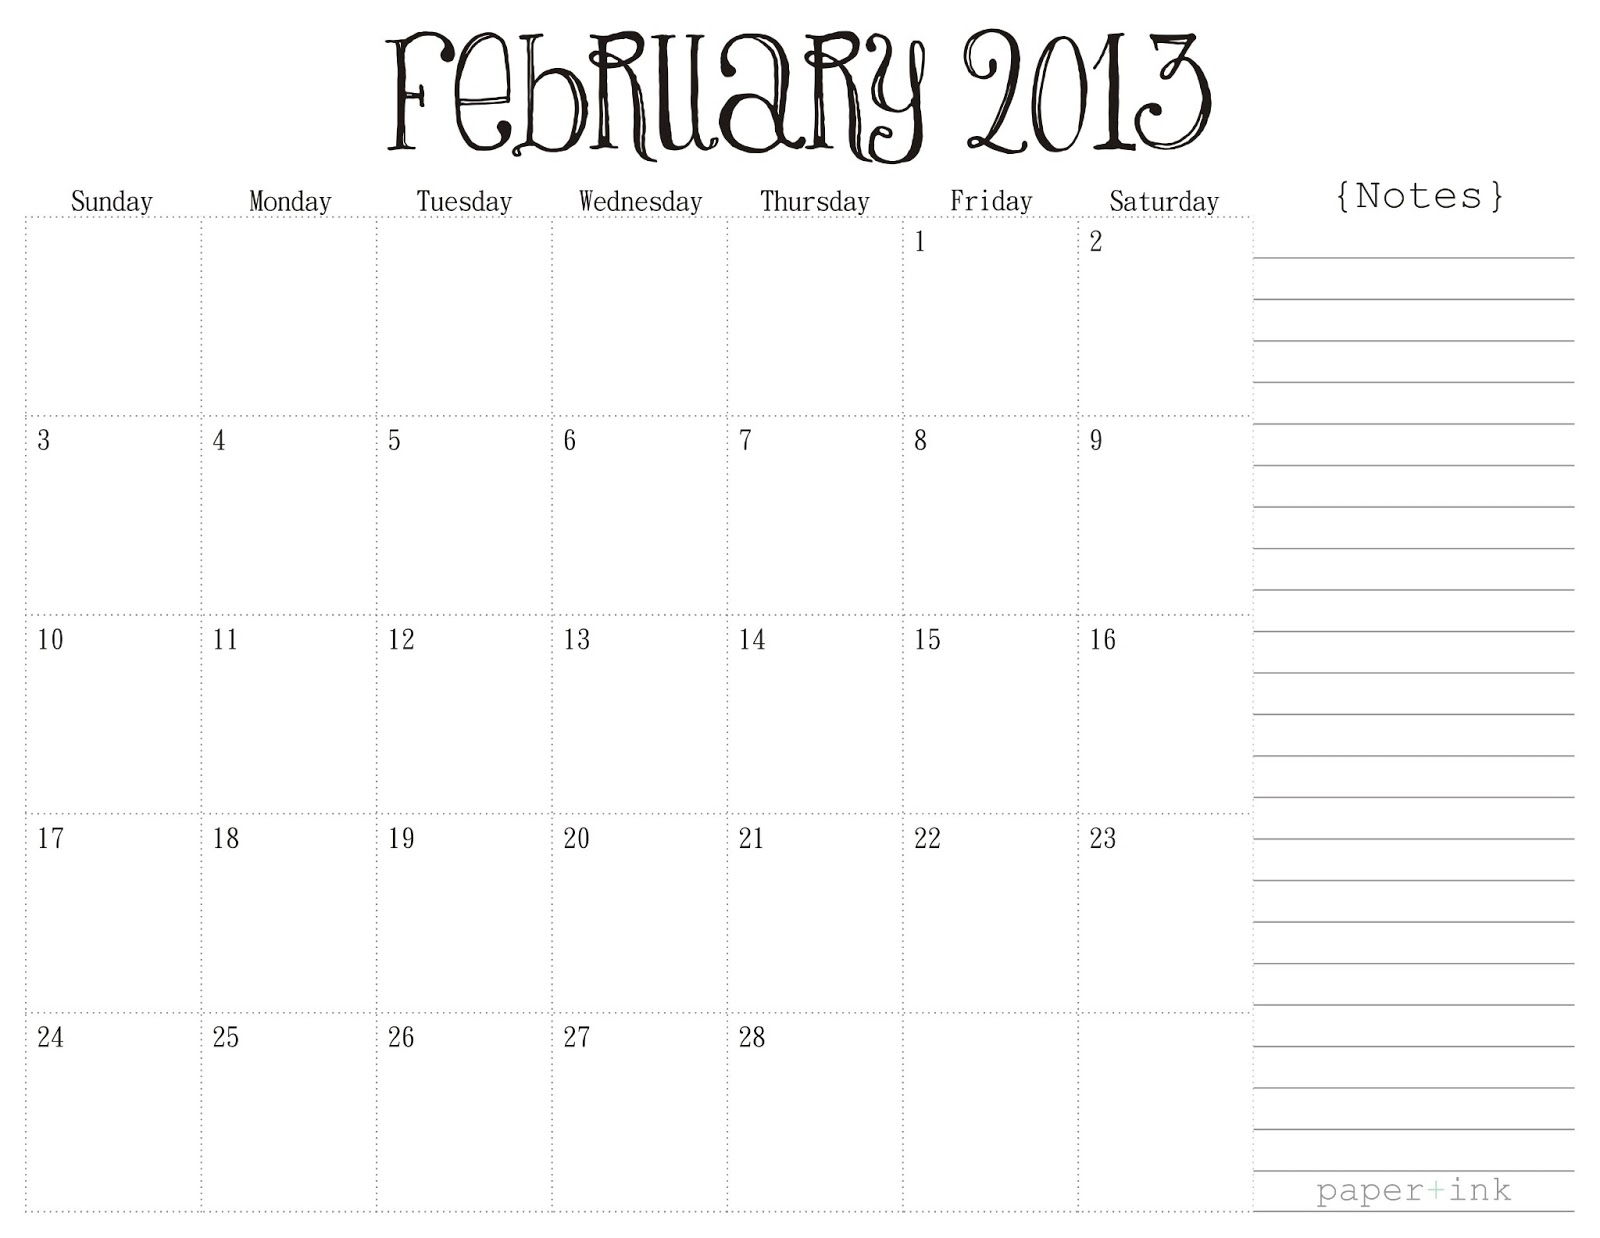 Pretty Unpretentious: Free Printable Calendars: February 2013